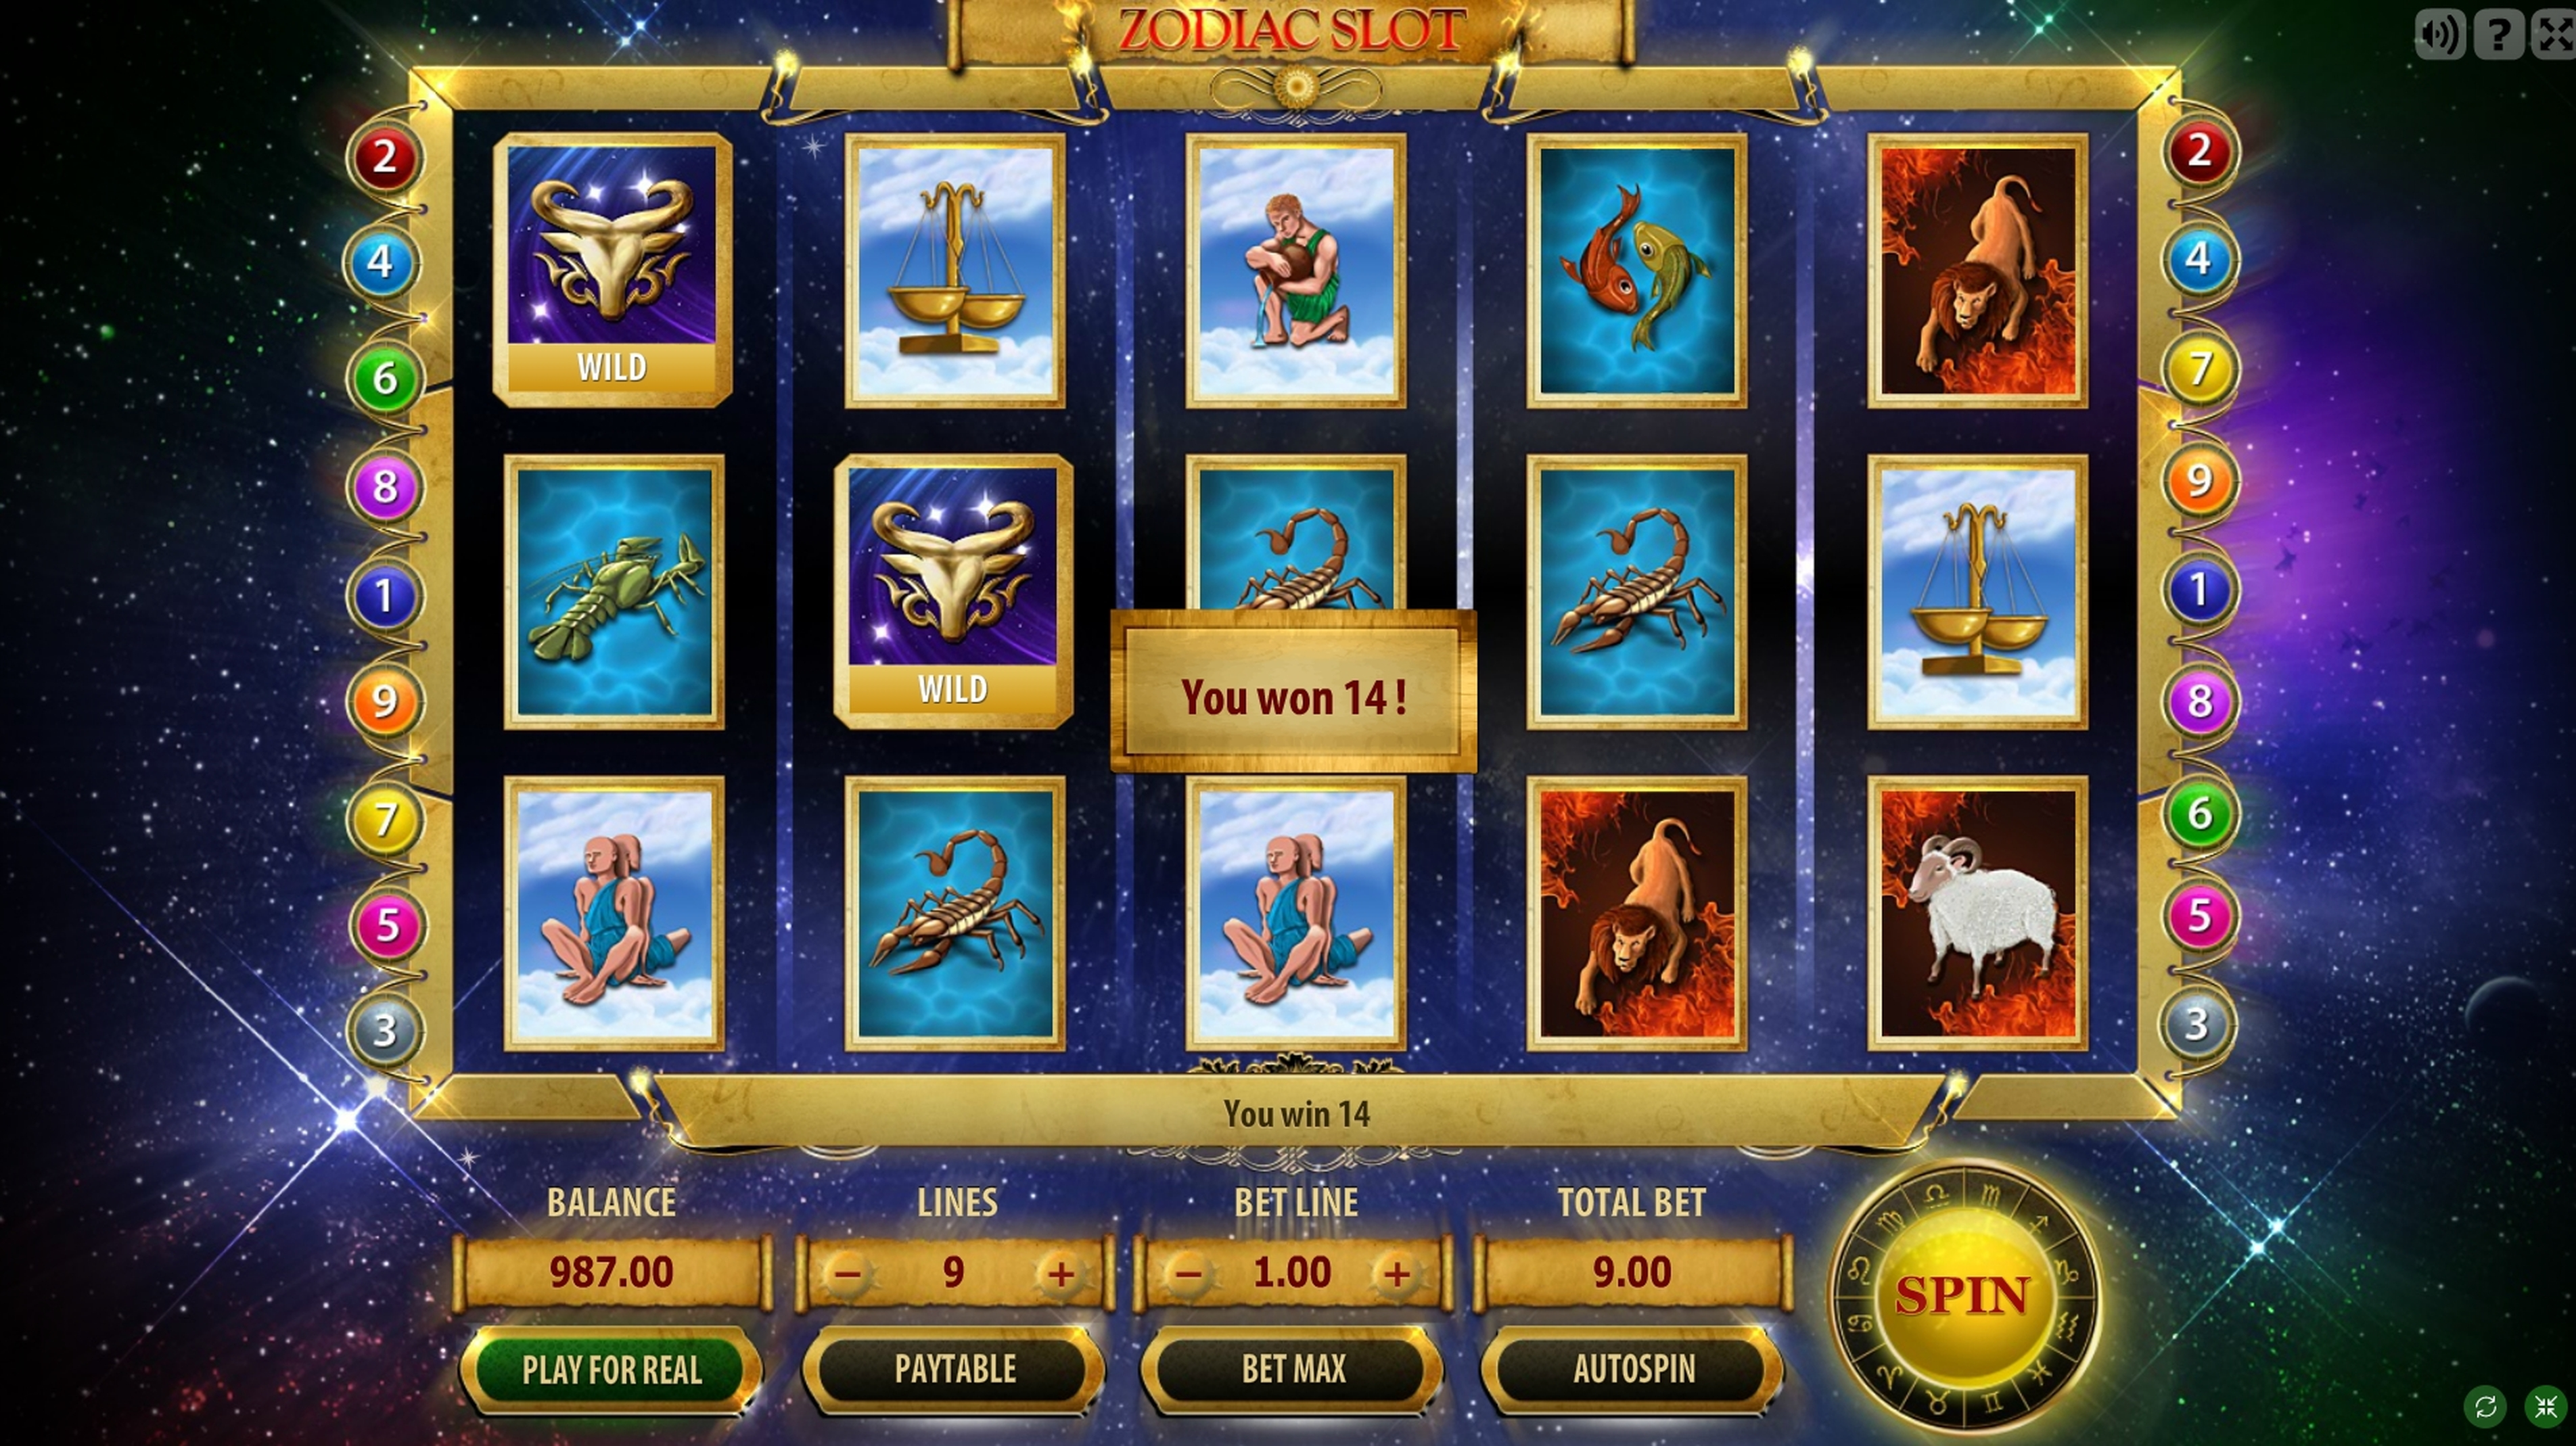 Win Money in Zodiac Slot Free Slot Game by GameScale